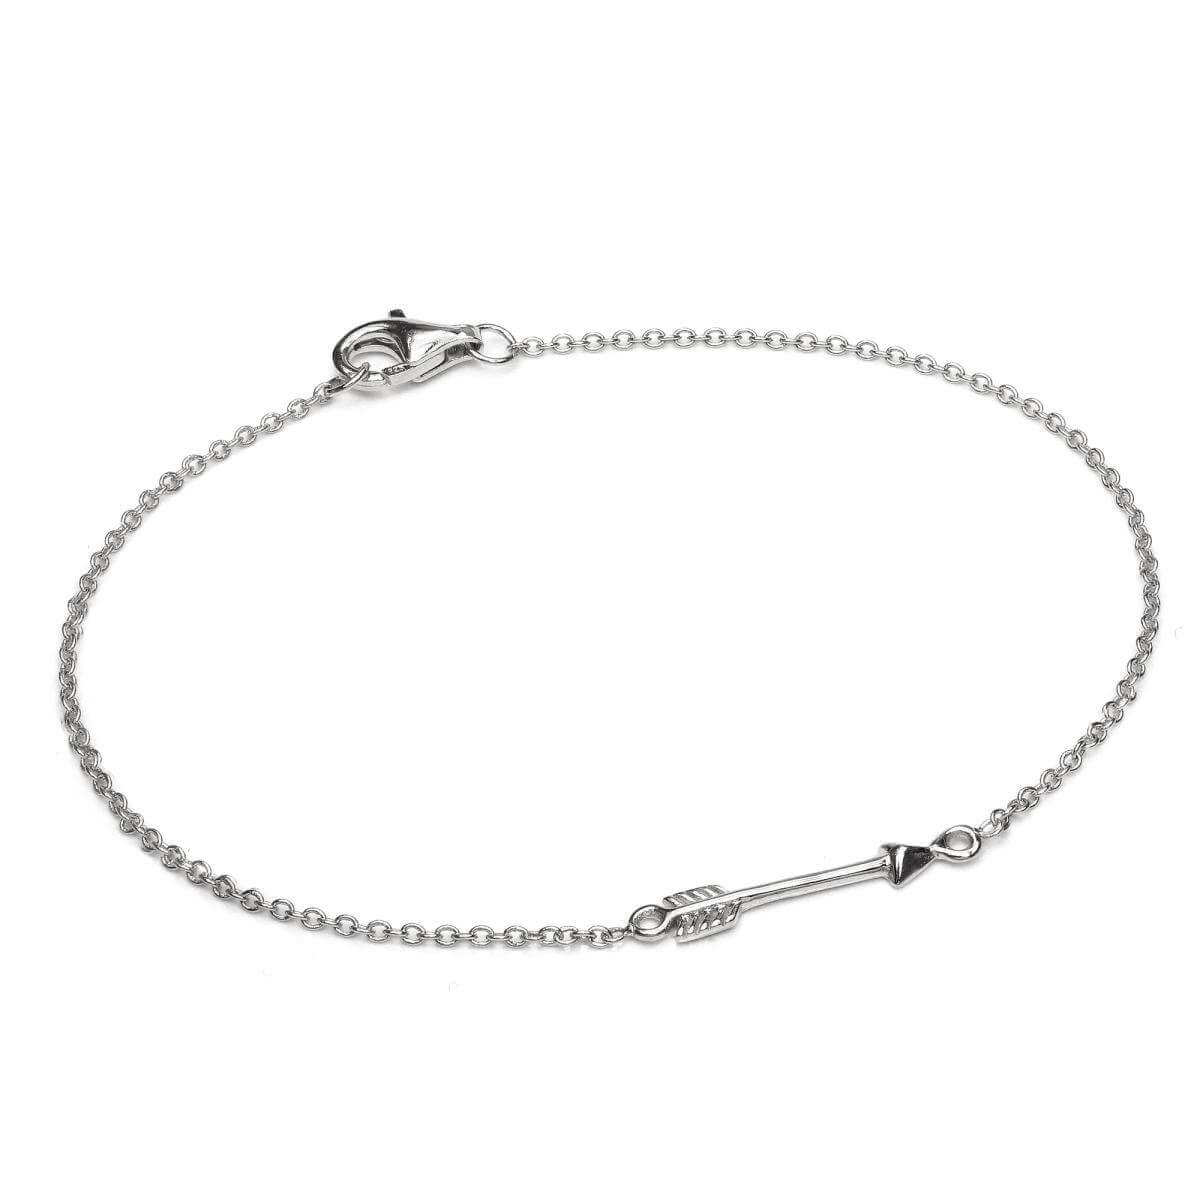 Fine Light Sterling Silver 7 Inch Arrow Bracelet with Lobster Clasp